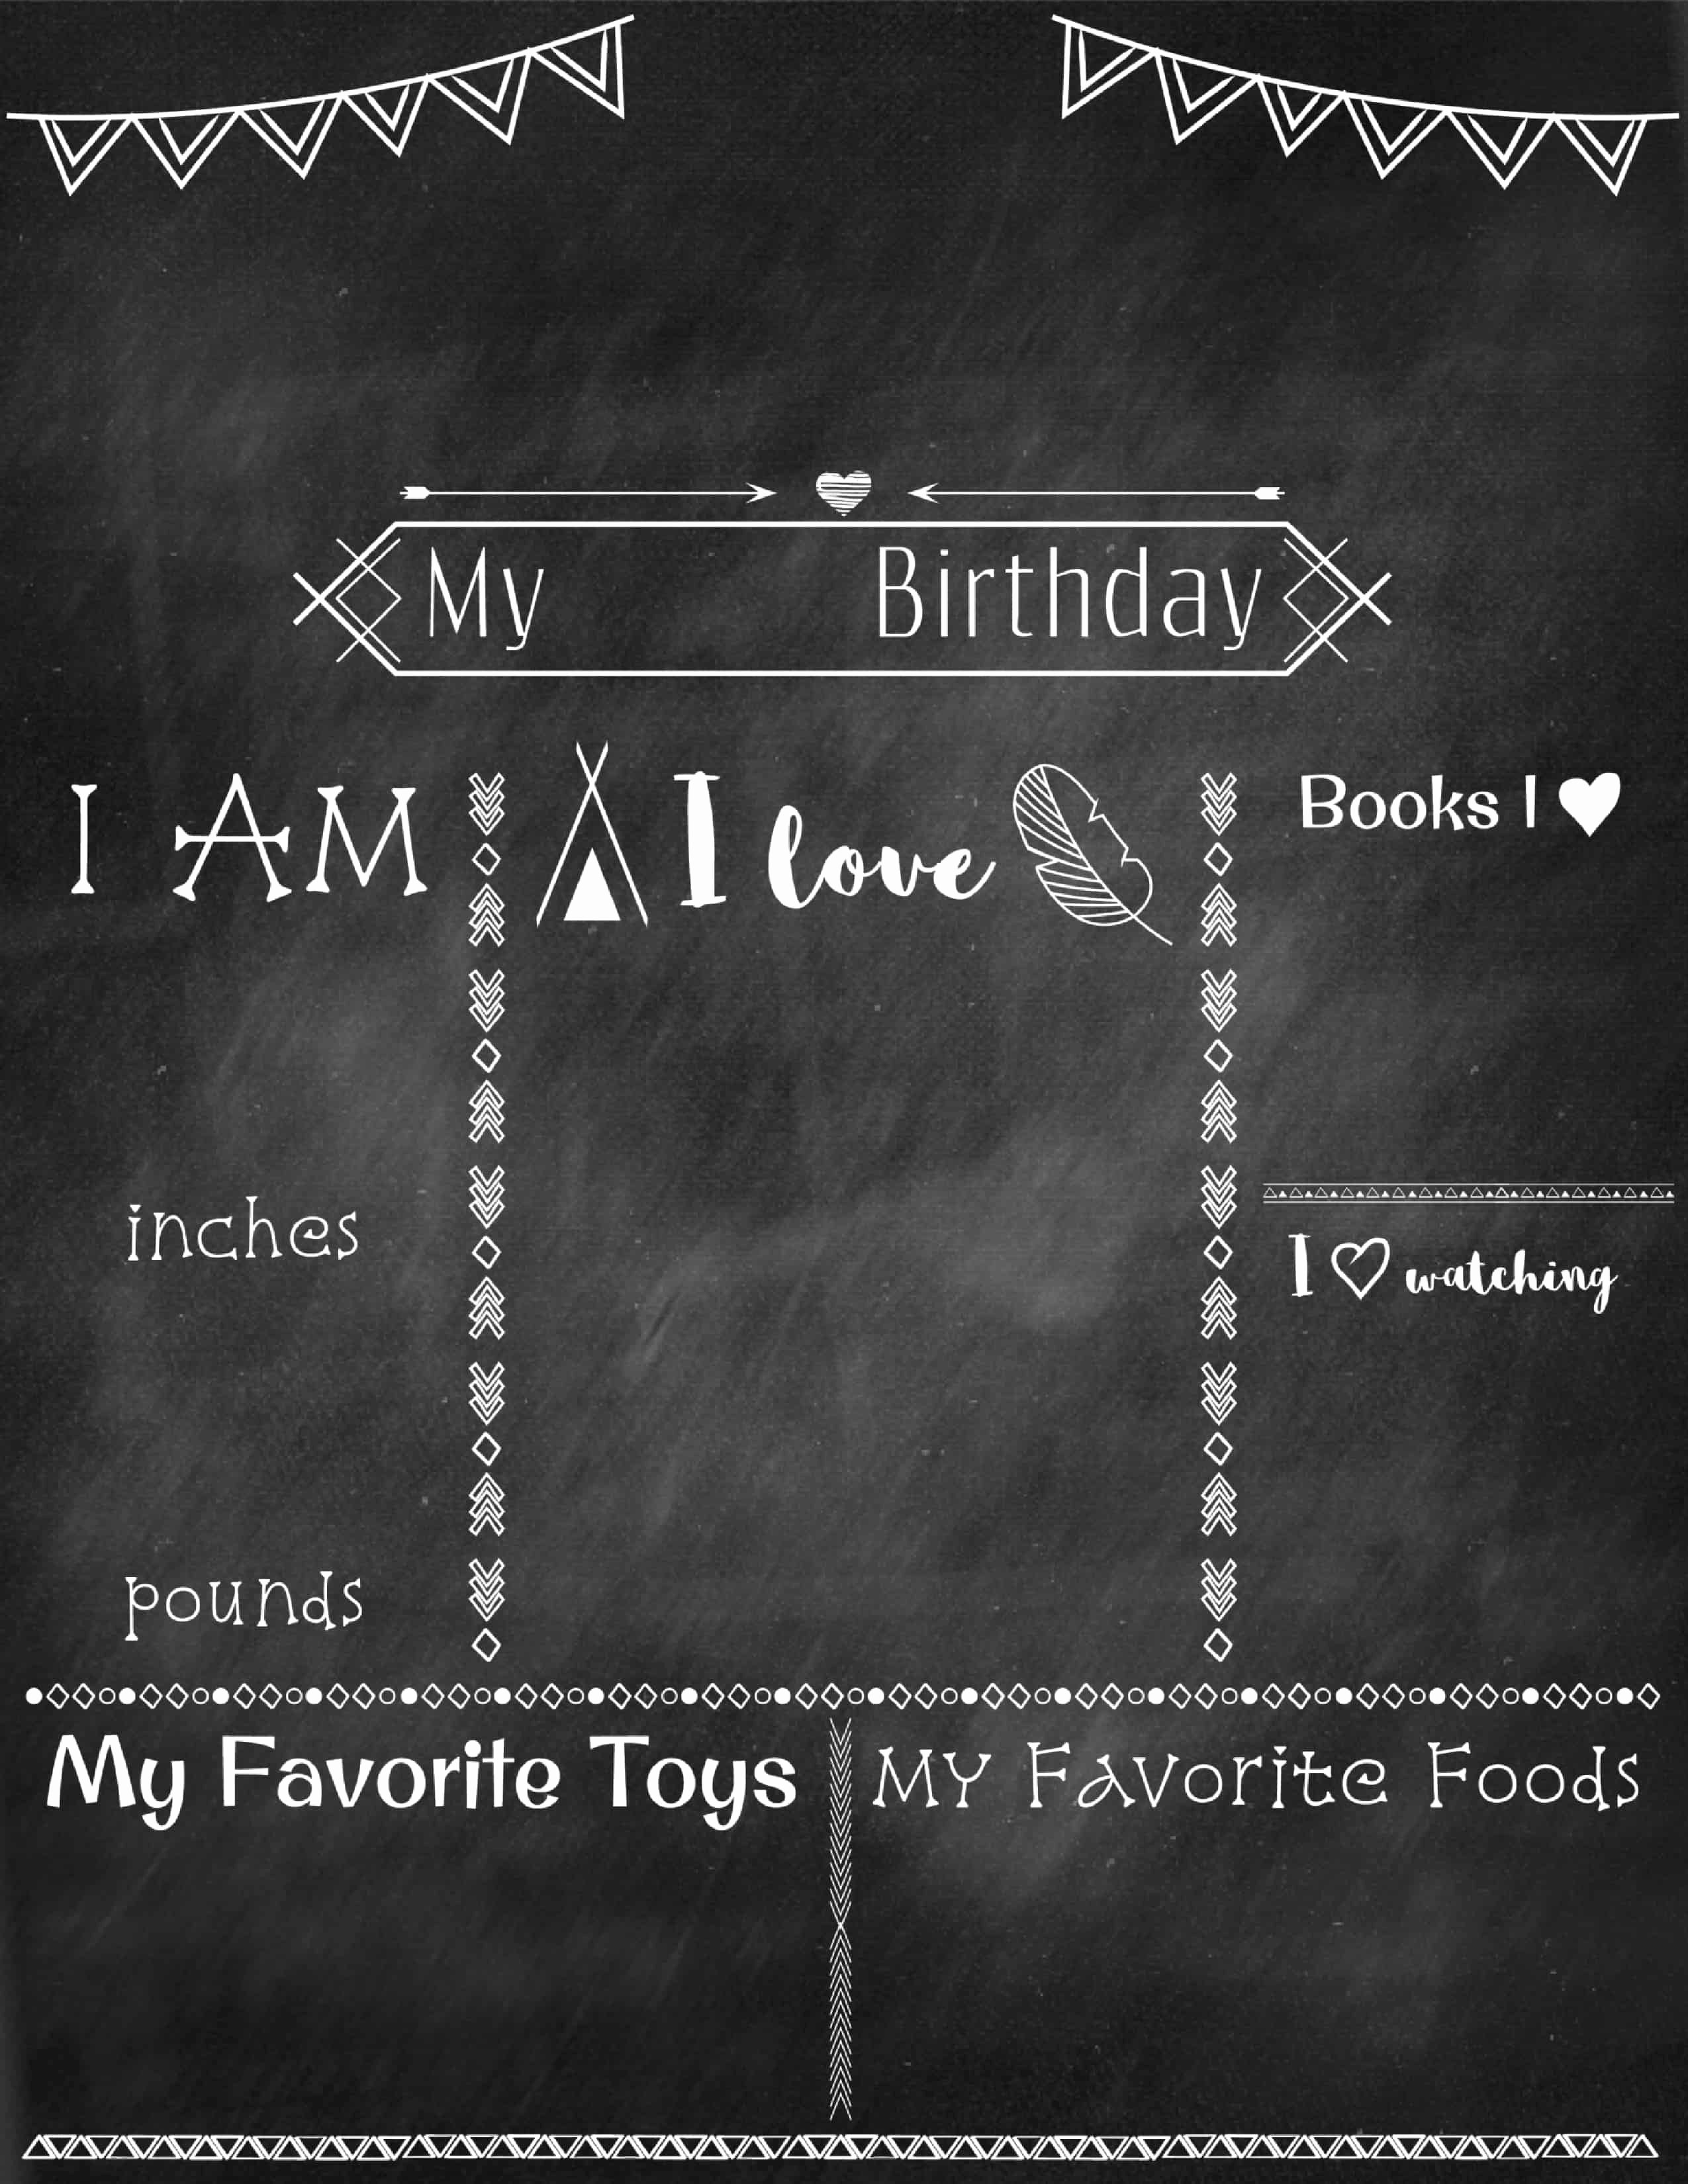 1st Birthday Chalkboard Sign Template Awesome Birthday Poster Template Free with Step by Step Tutorial